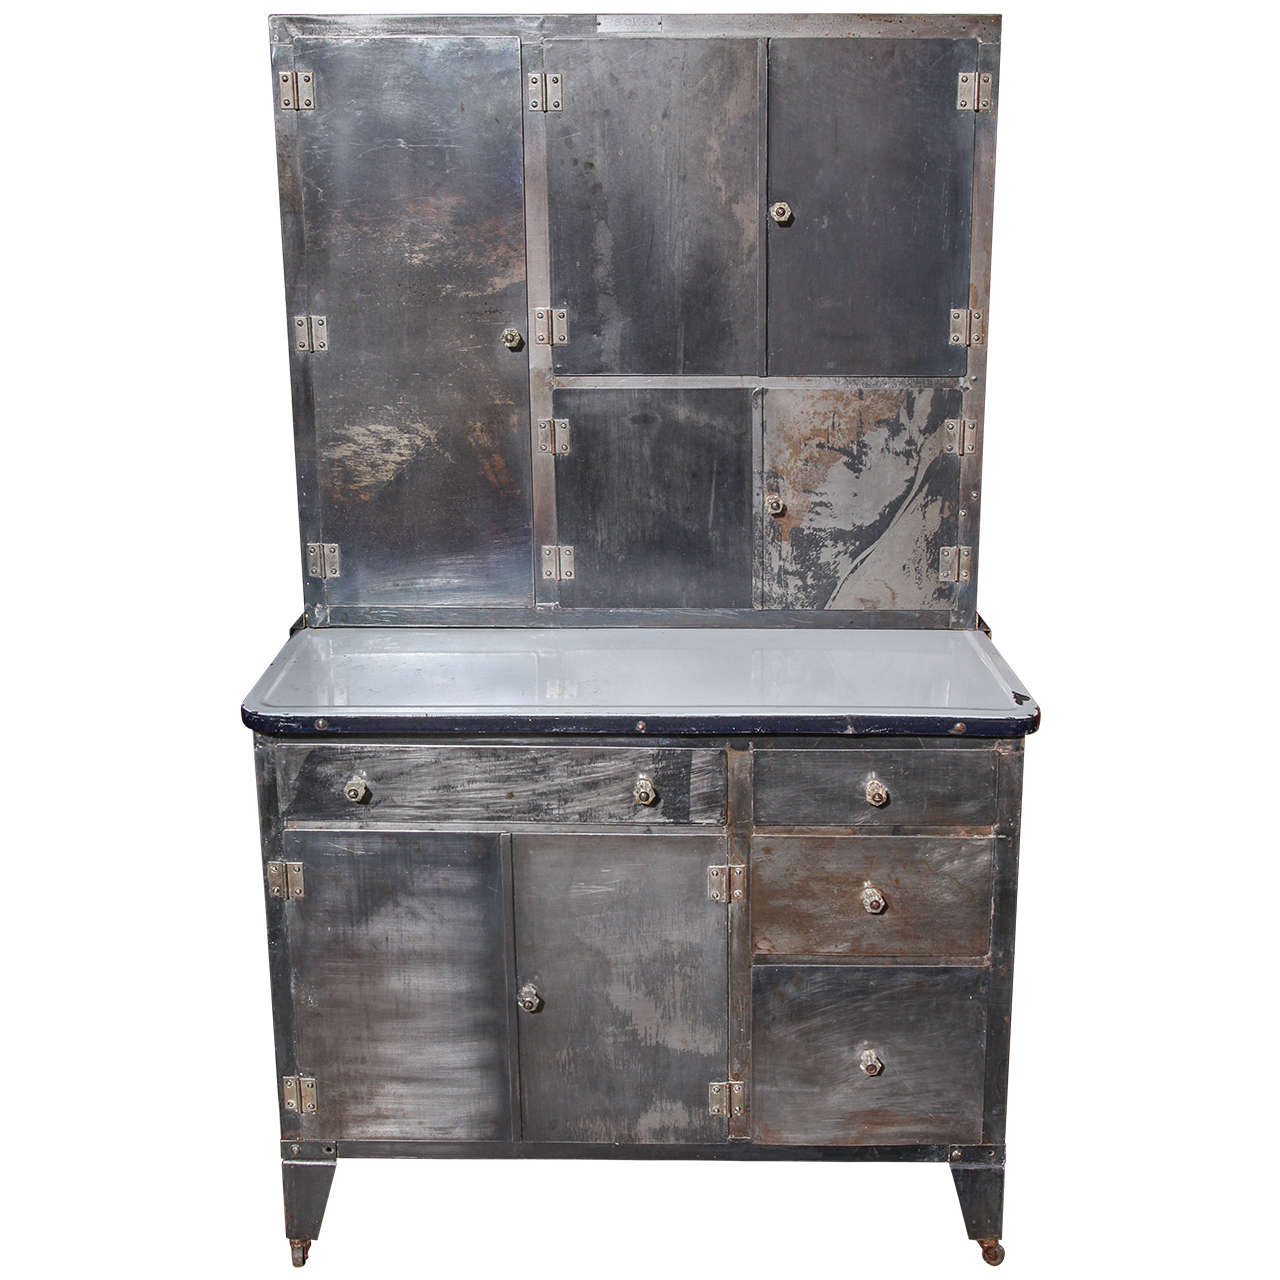 1930s Packer Rolling Metal Hoosier Cabinet At 1stdibs